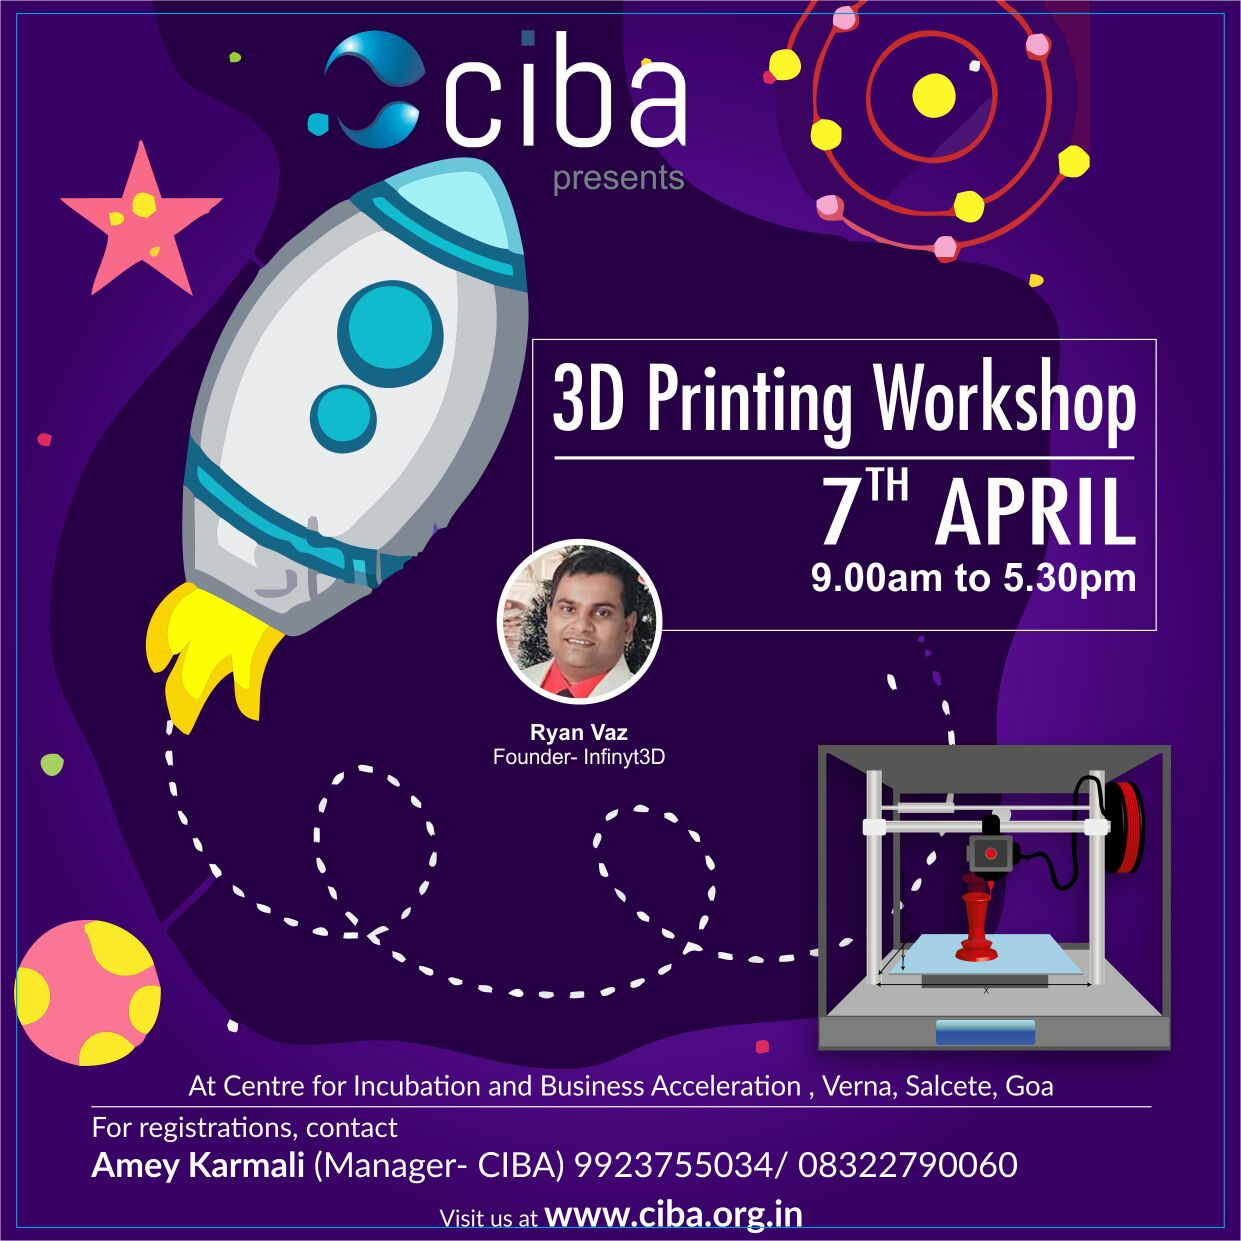 ciba-3D Printing Workshop